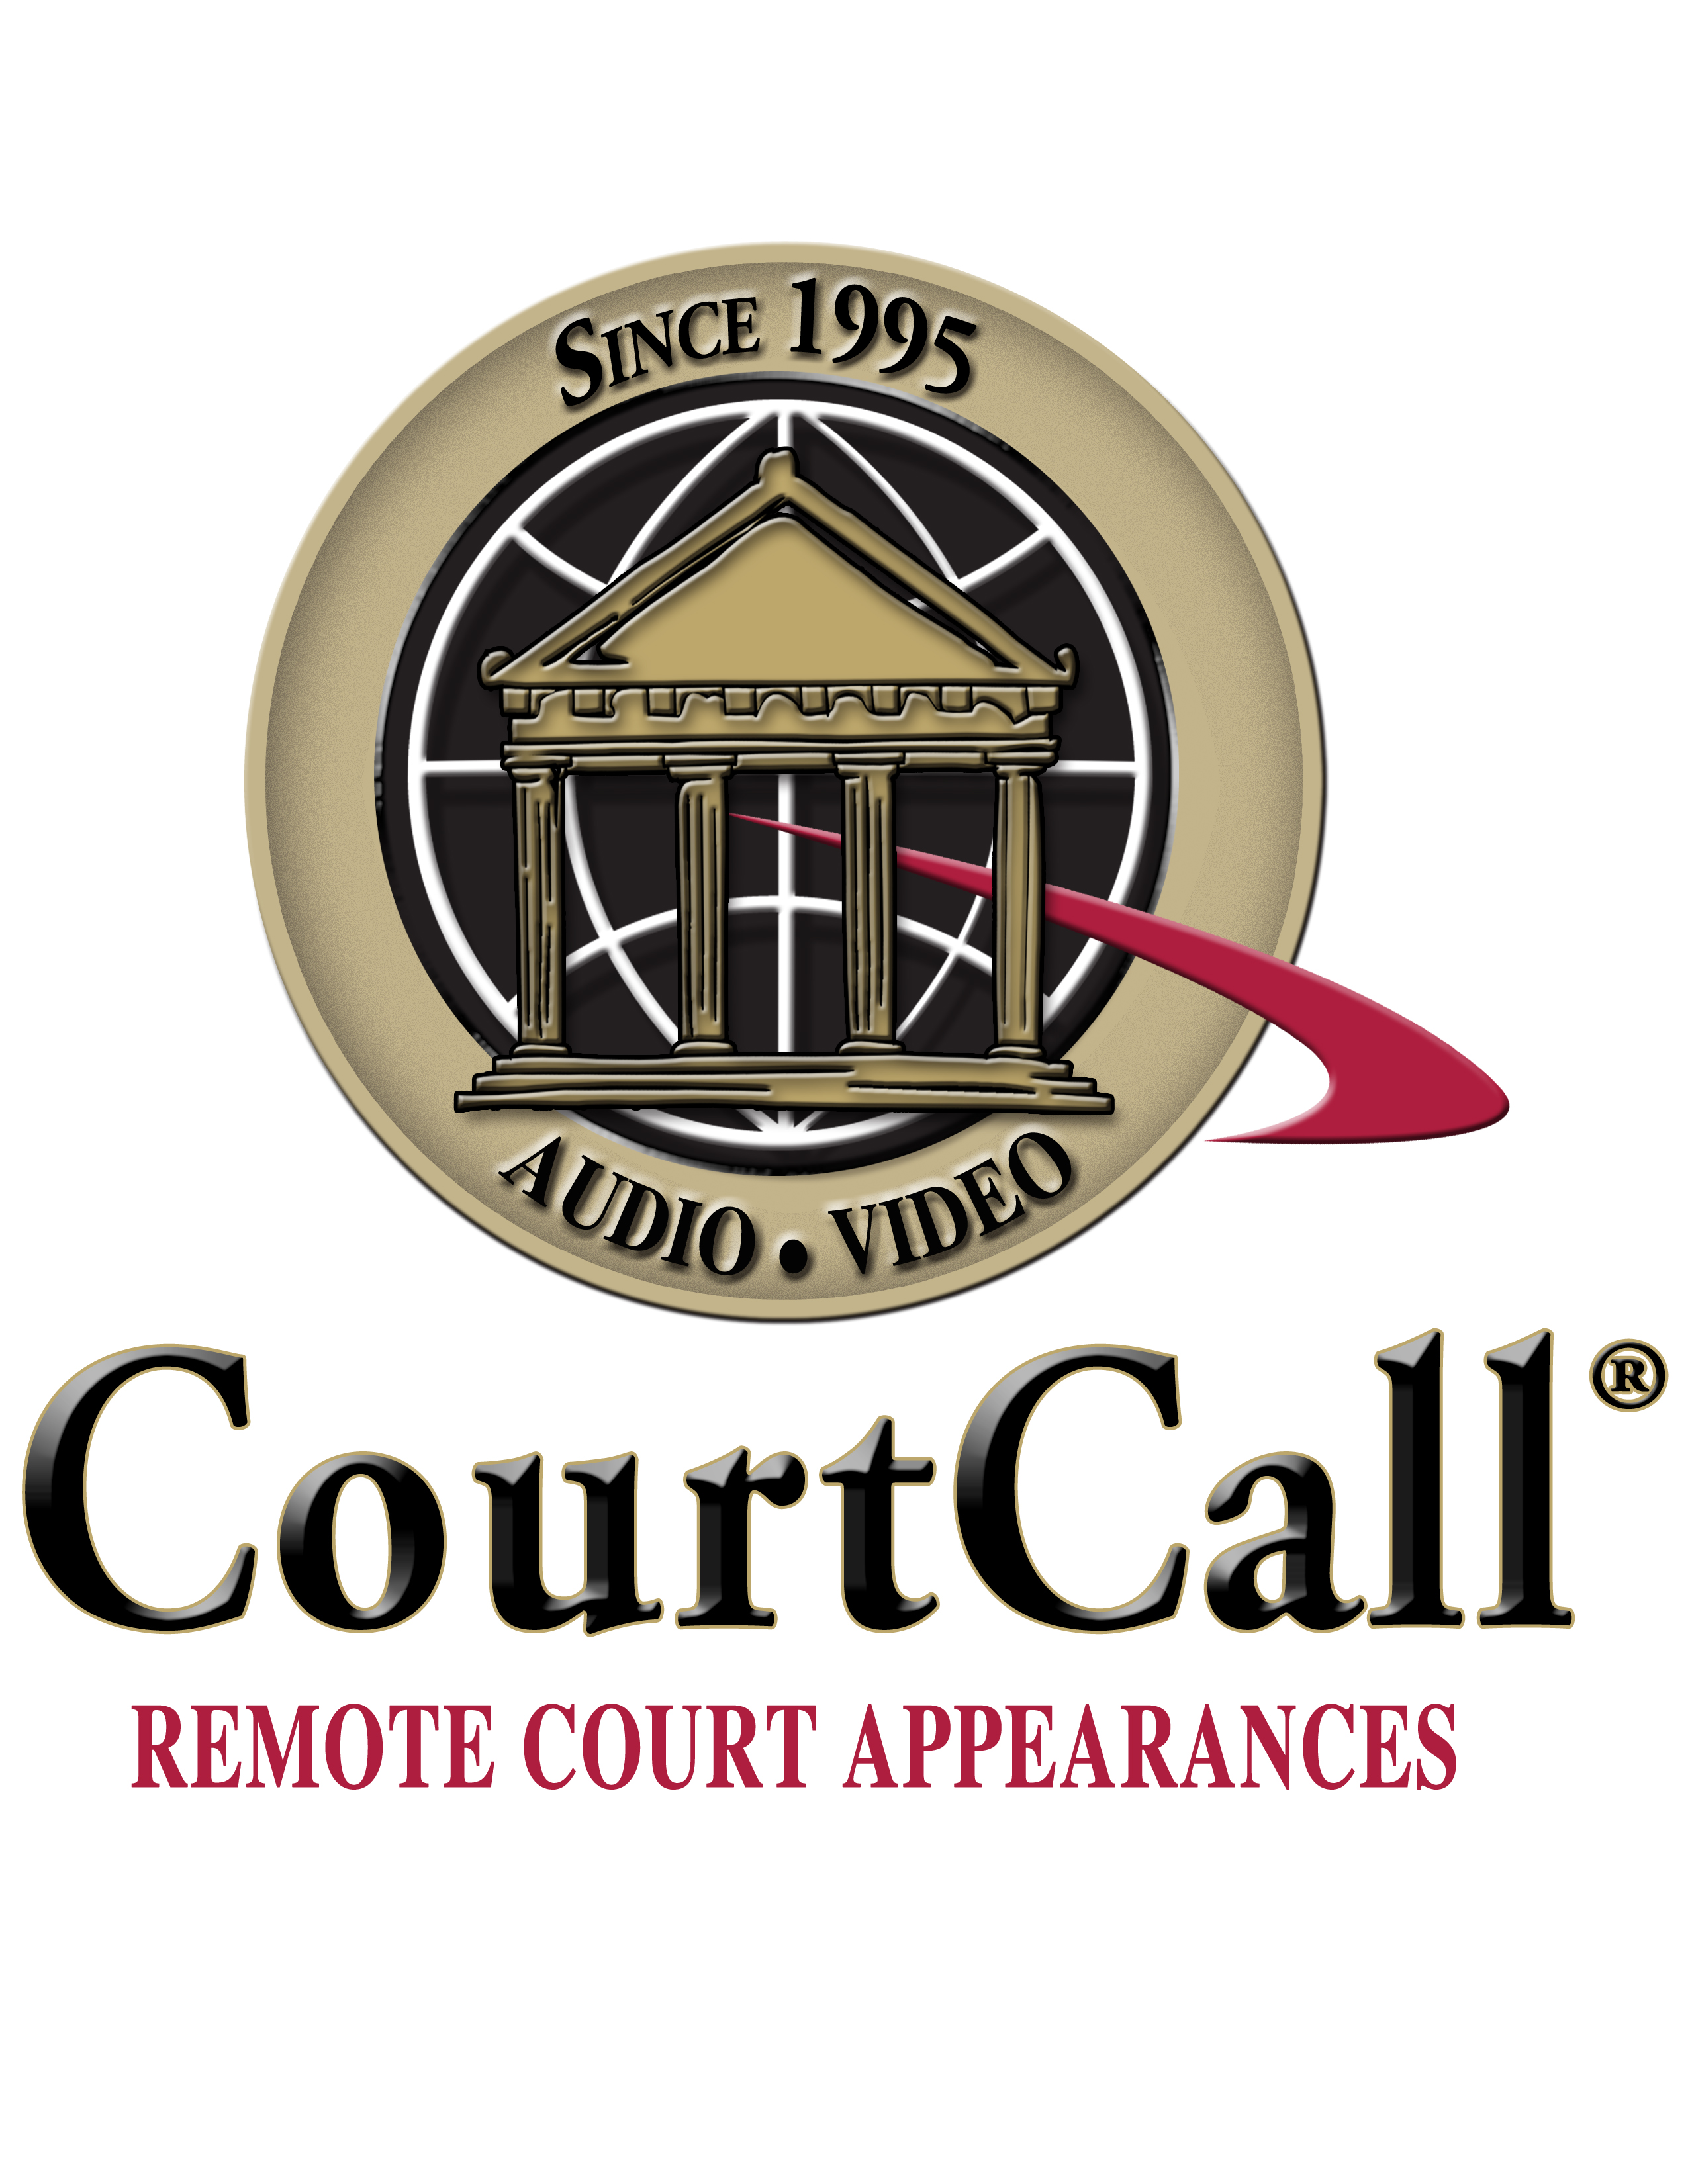 What Should I Do if I Cannot Be Physically Present for My Court Hearing? — USE COURT CALL!